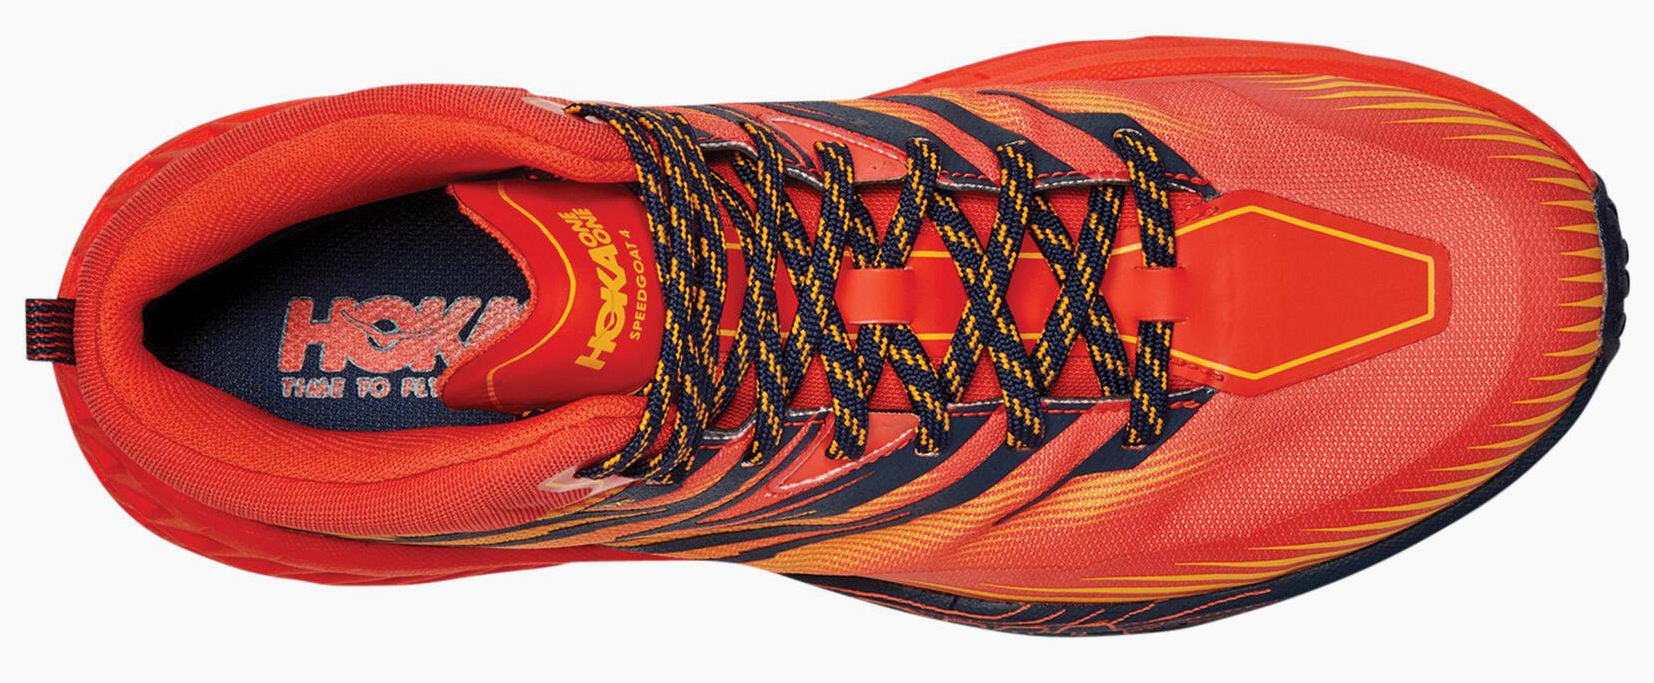 Hoka One one Speedgoat Mid 2 GTX collar